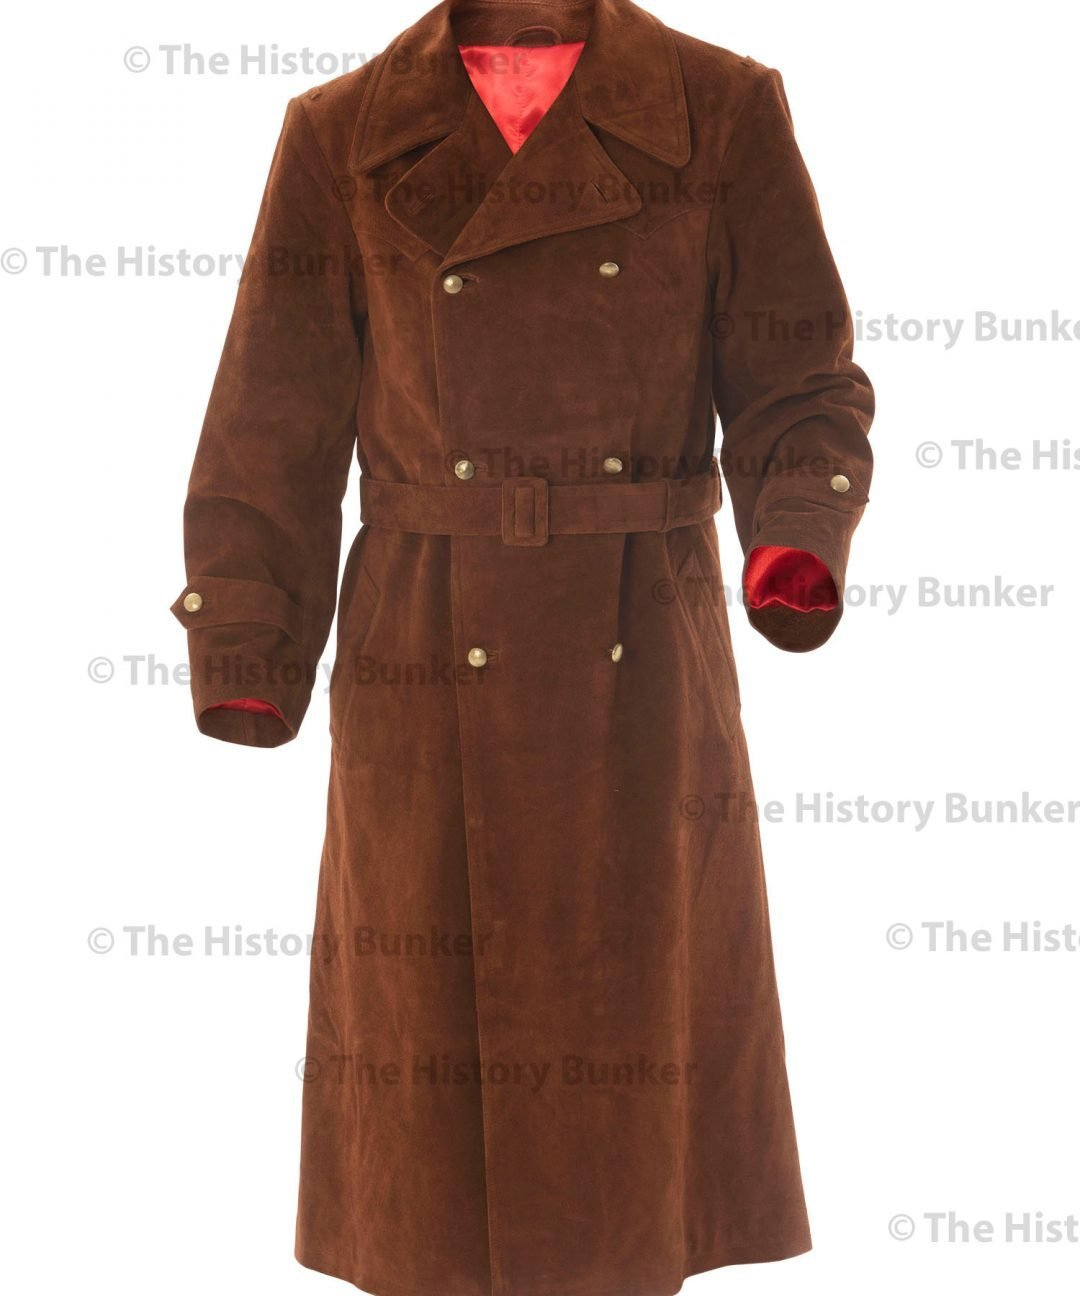 WW2 German Army Senior officer leather trench coat - brown suede